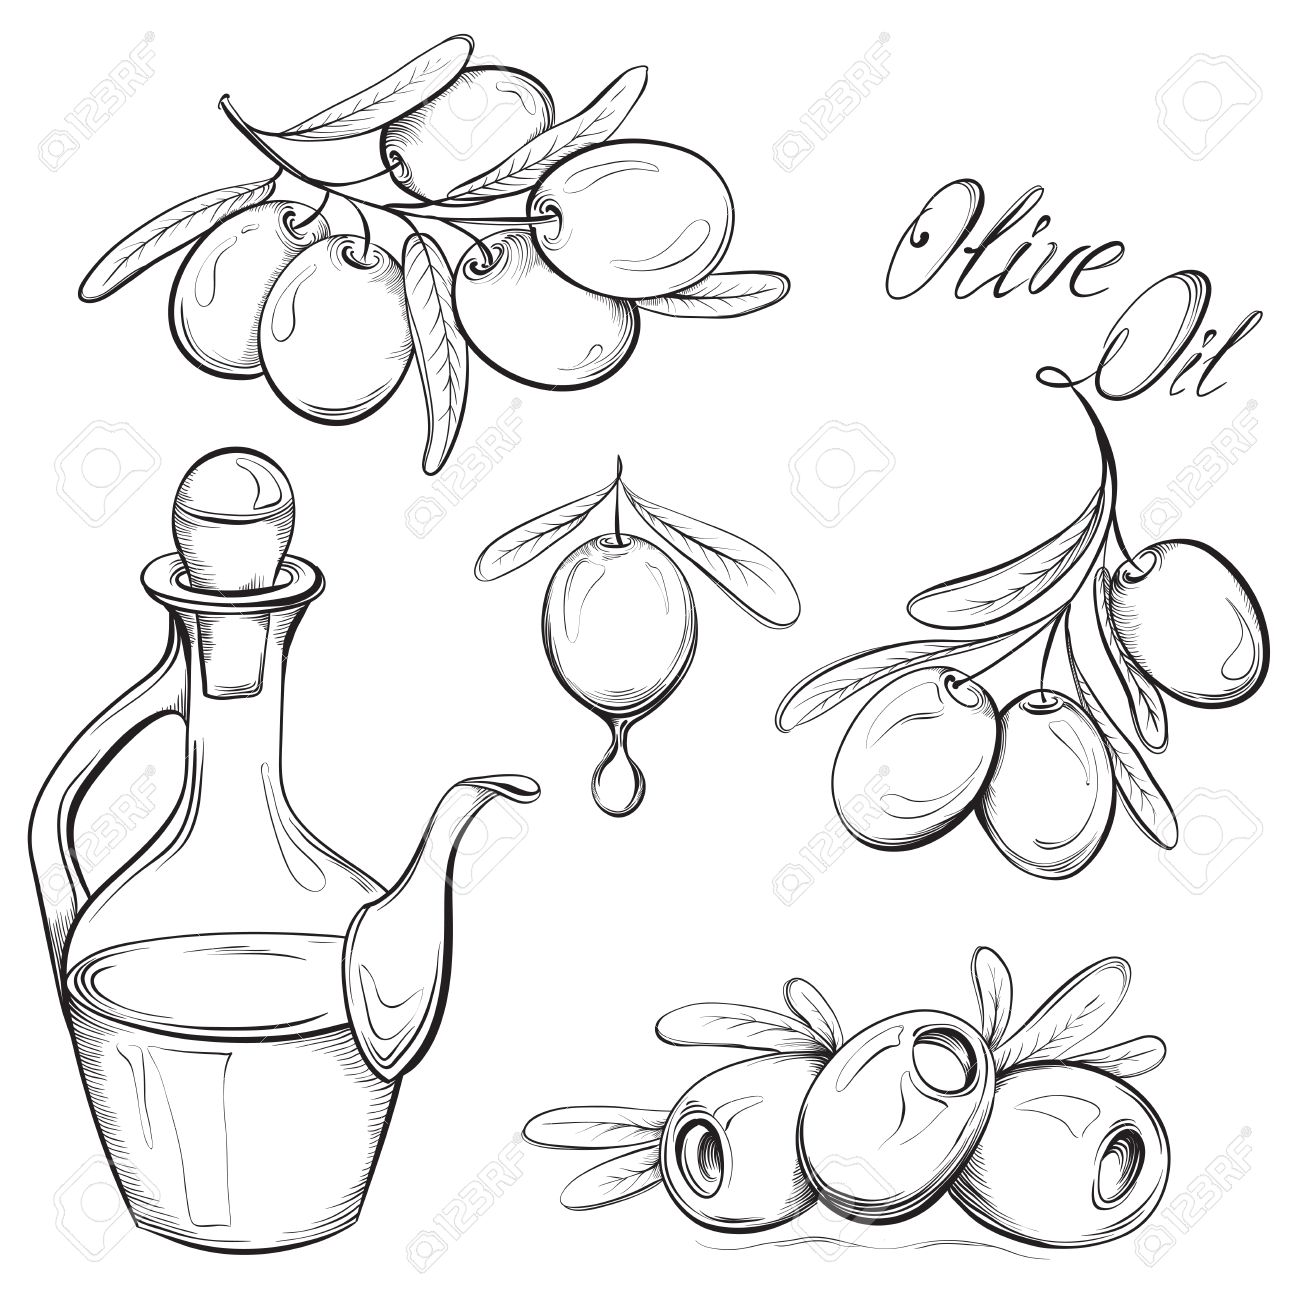 Hand drawn olive set. Olive oil and olive branch. Black and white vector illustration - 37379945